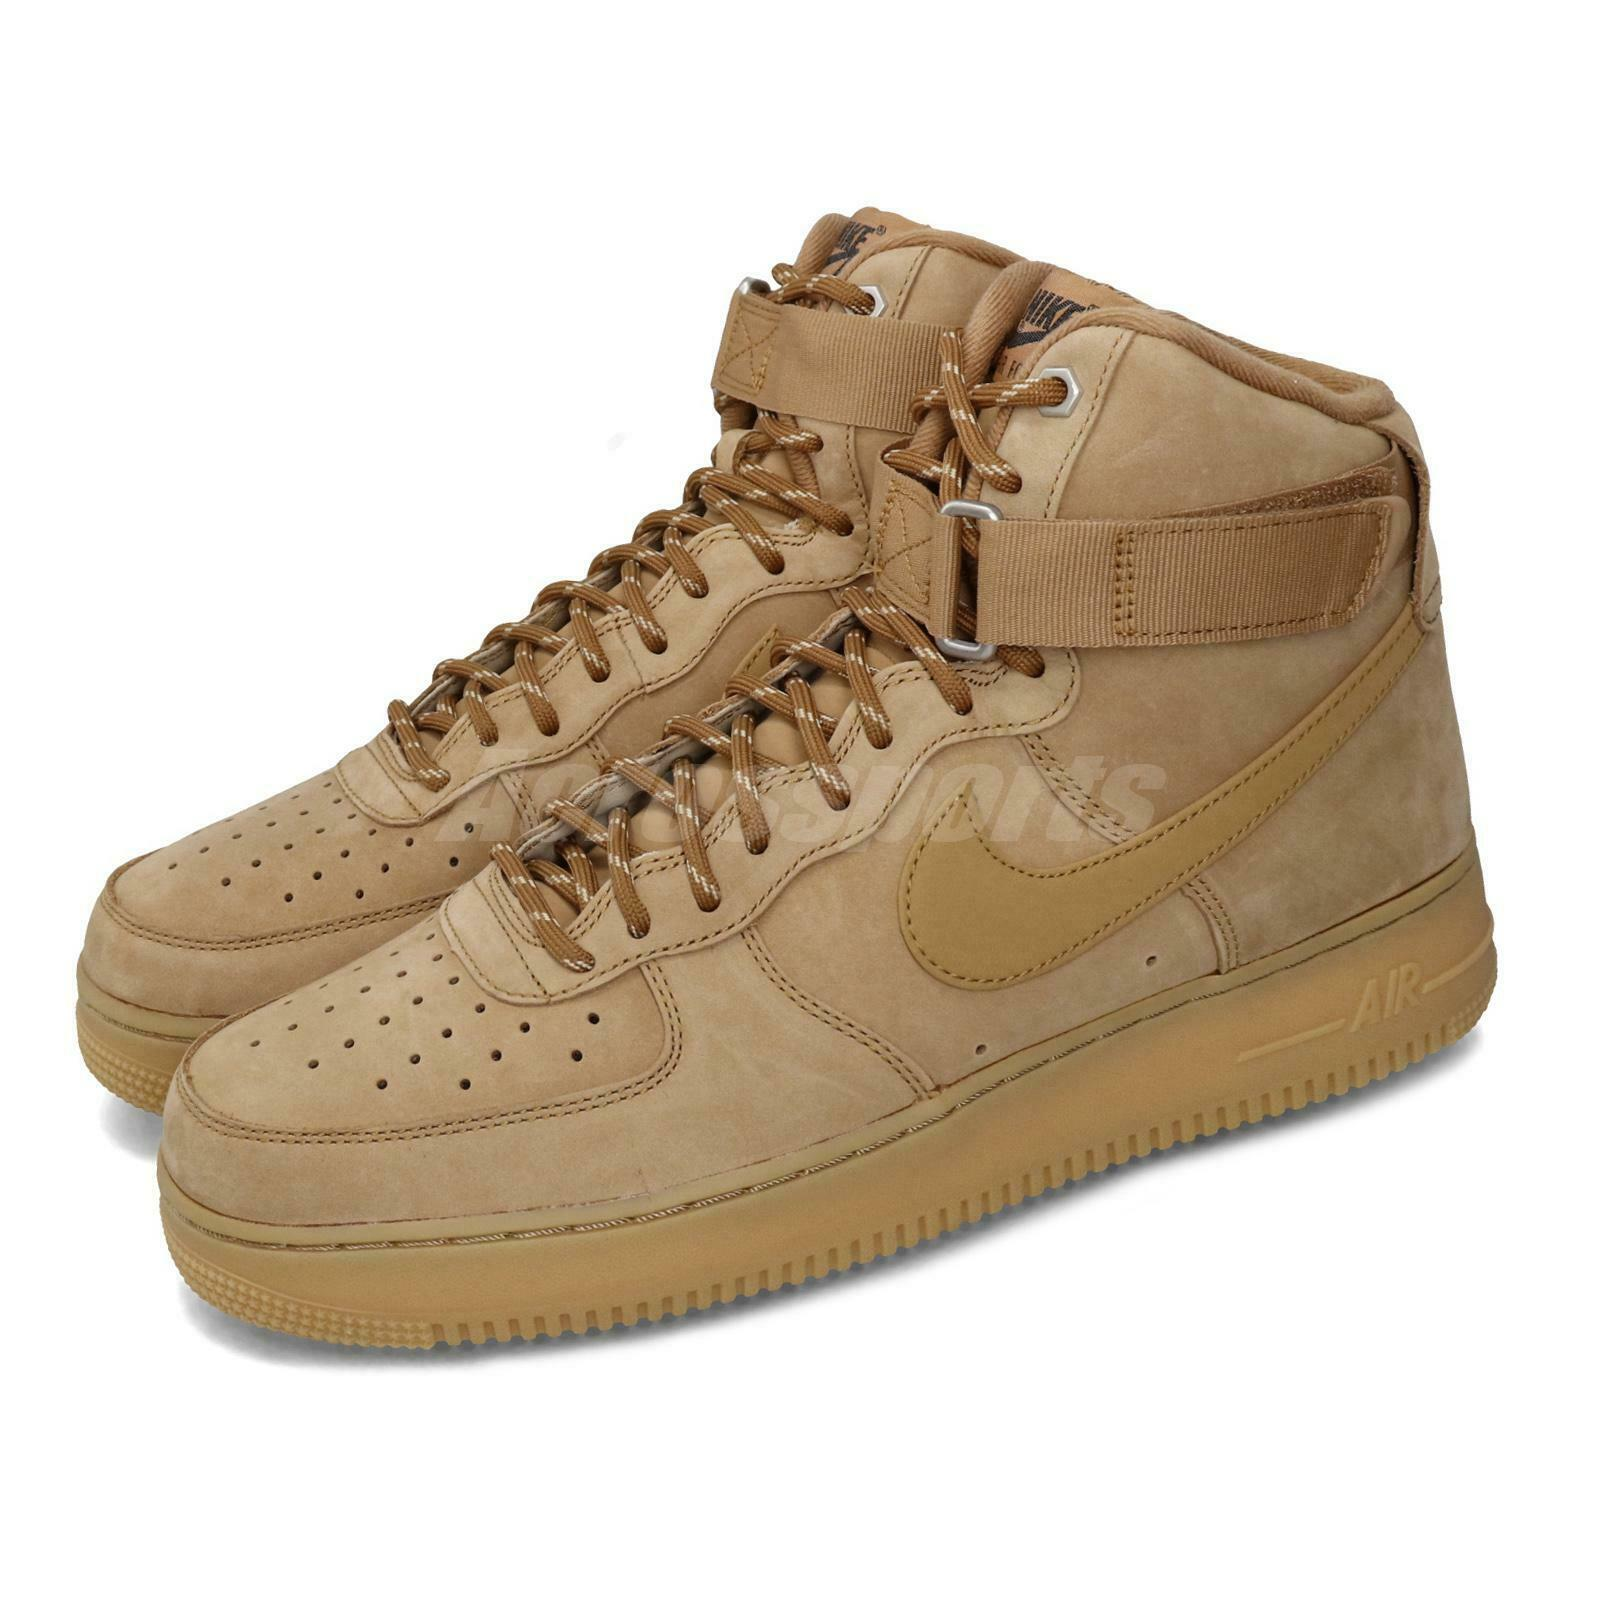 Cuyo Establecer Personas mayores  Nike Air Force 1 High 07 LV8 WB Flax Wheat AF1 Classic Men Shoes 882096-200  for sale online | eBay